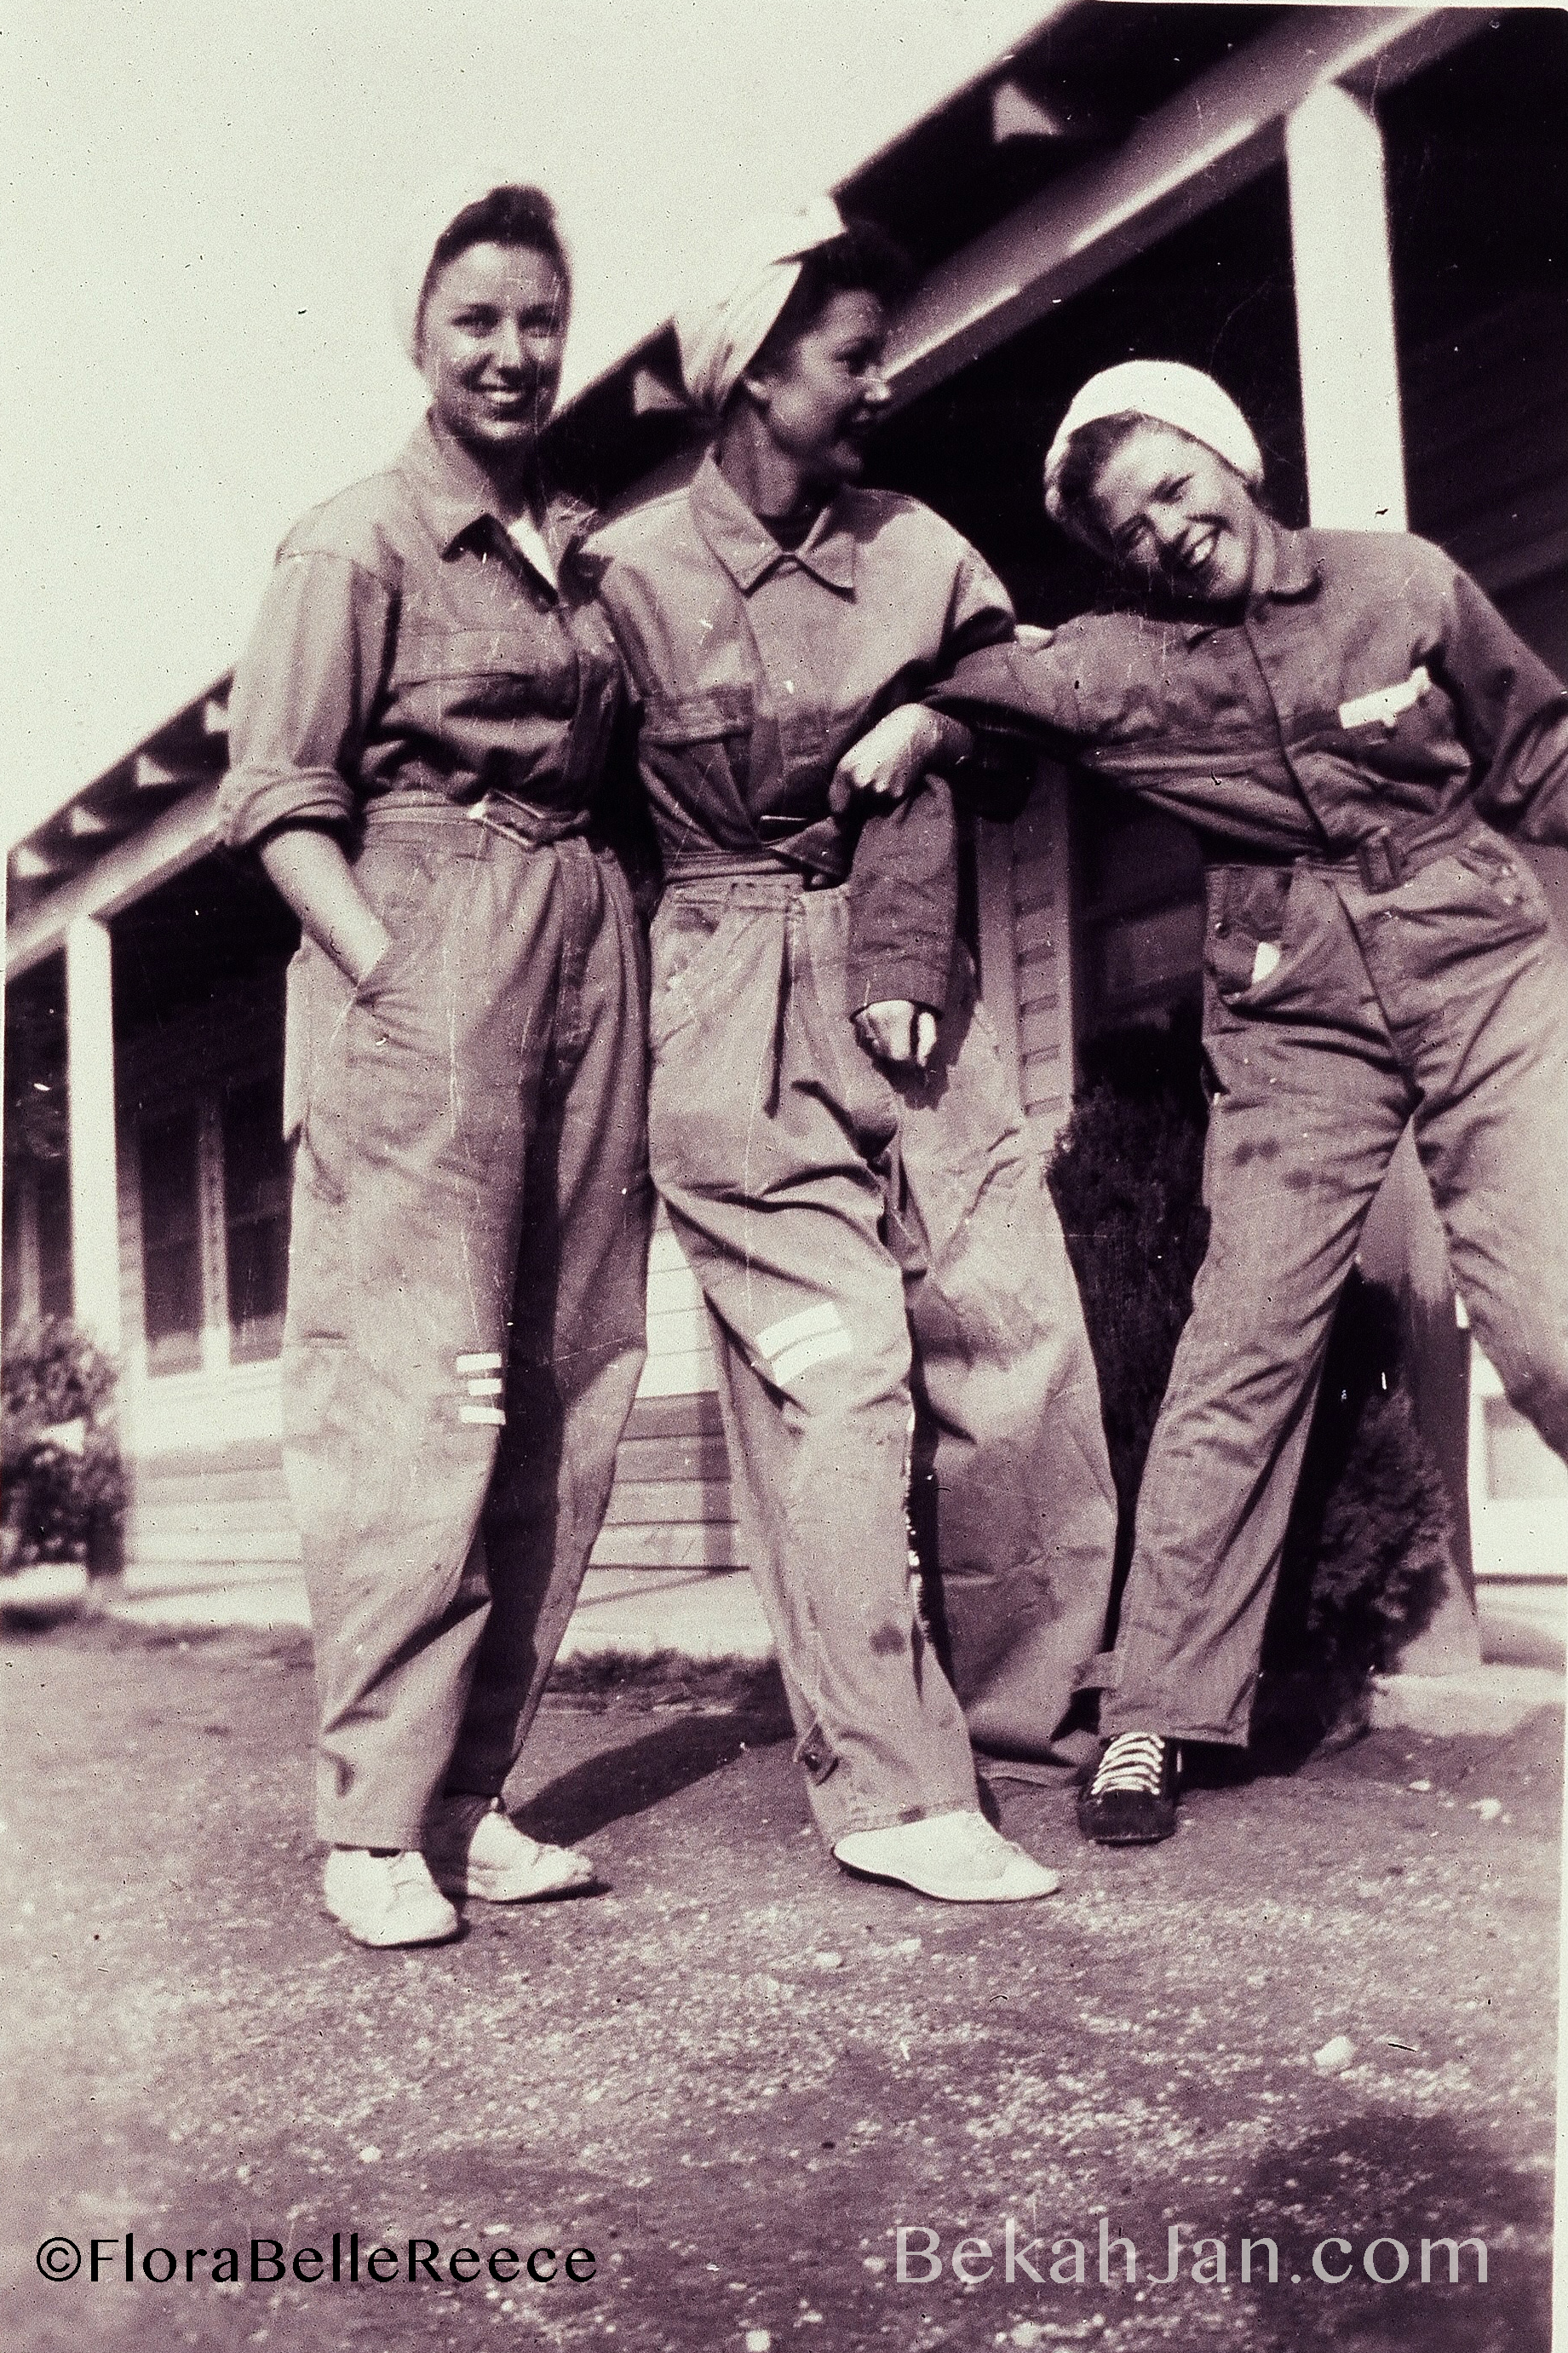 Flora Belle Reece (far right)